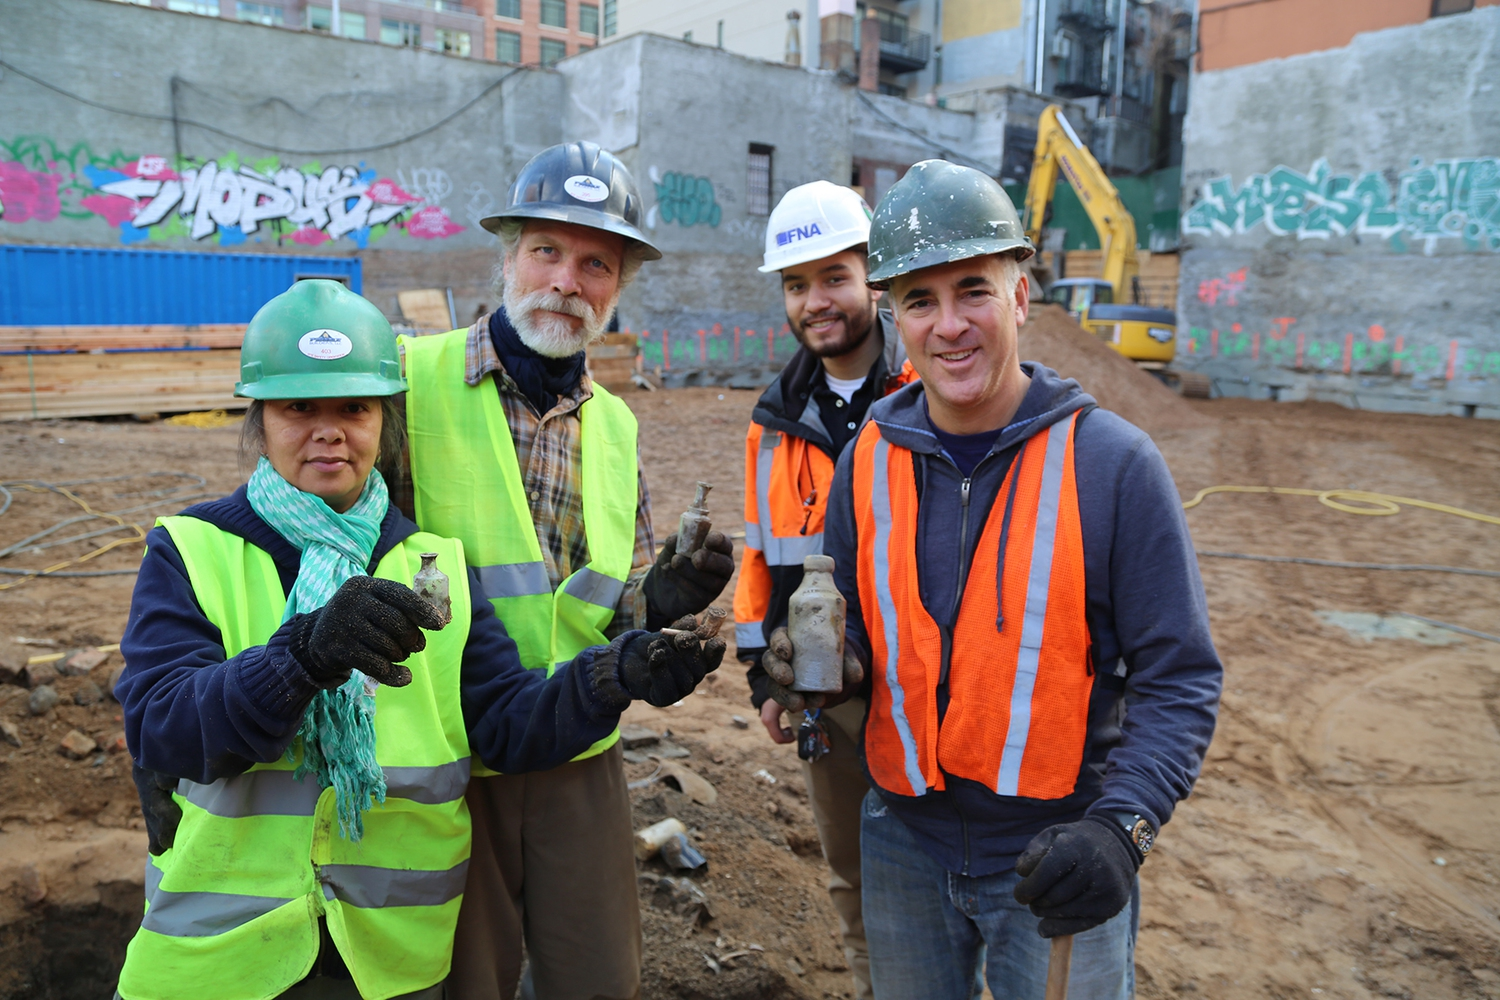 Scott Jordan, second from left, and Bob Perl, far right, at the dig site, with Jordan's assistant, far left, and the construction-site foreman, second from right.